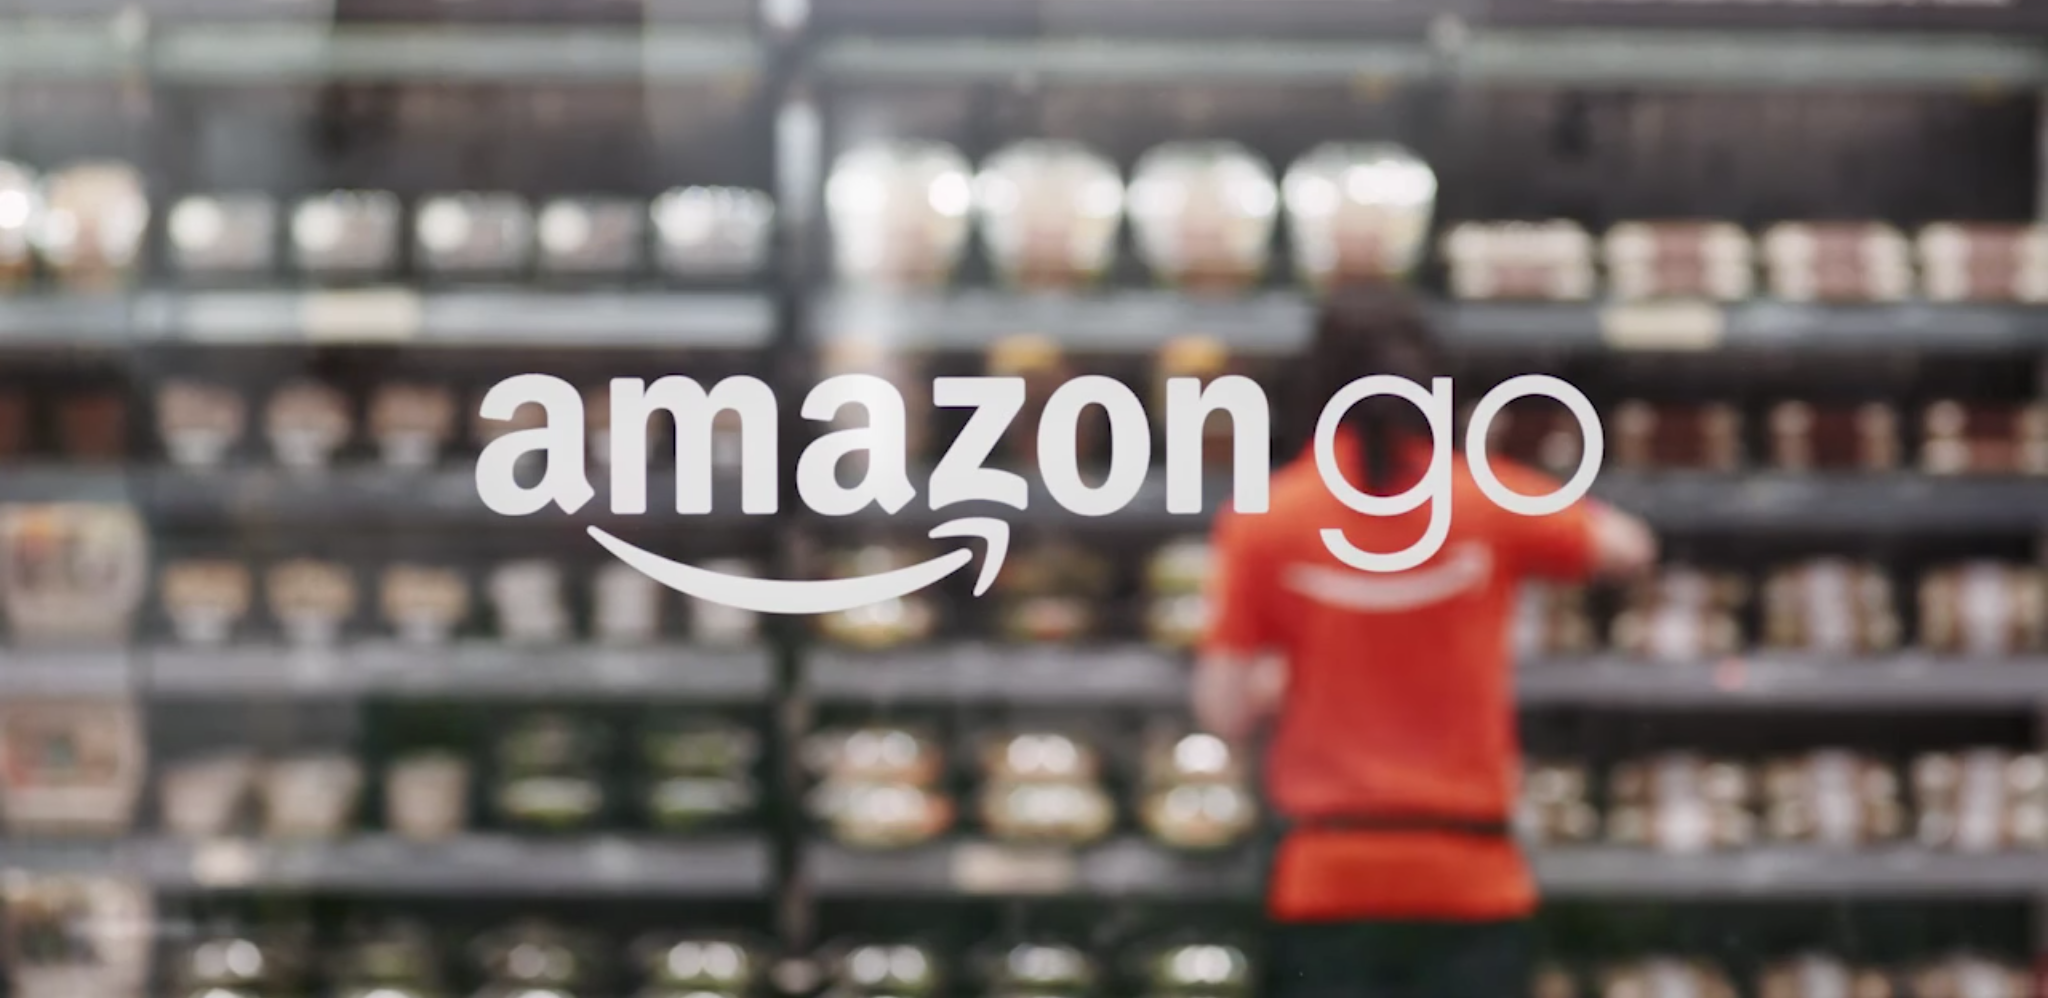 ct-amazon-go-grocery-store-e1481662389832.png